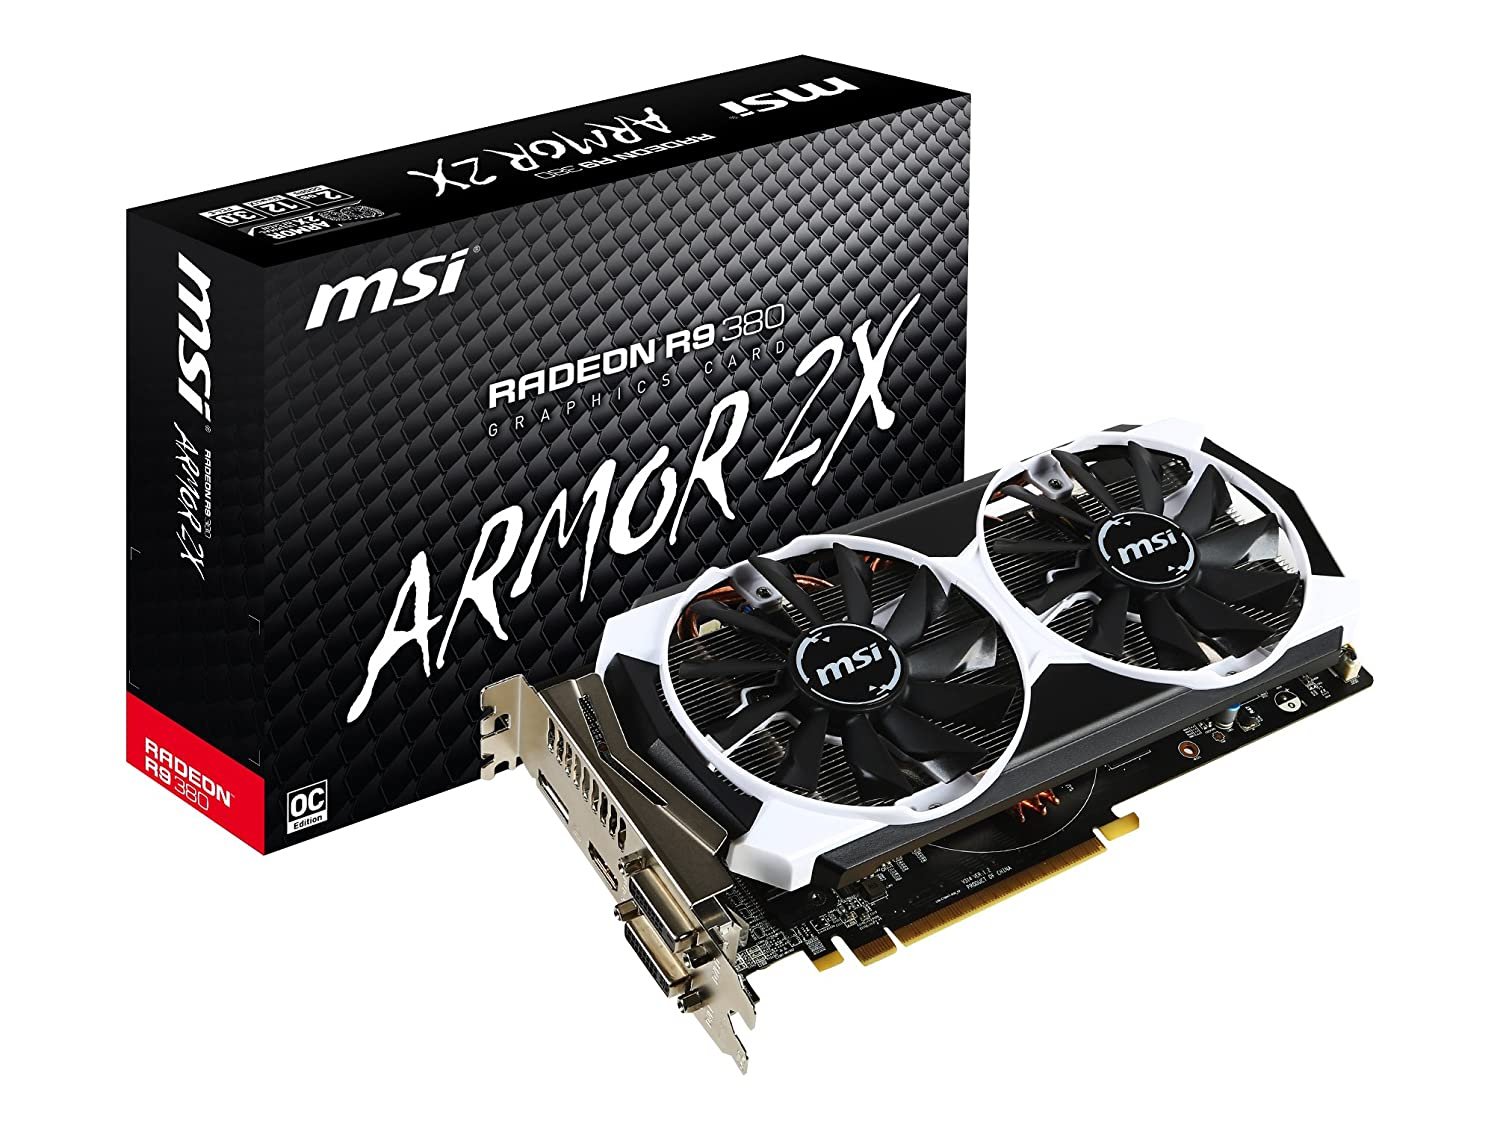 NEW DRIVER: AMD RADEON R9 380 GRAPHICS